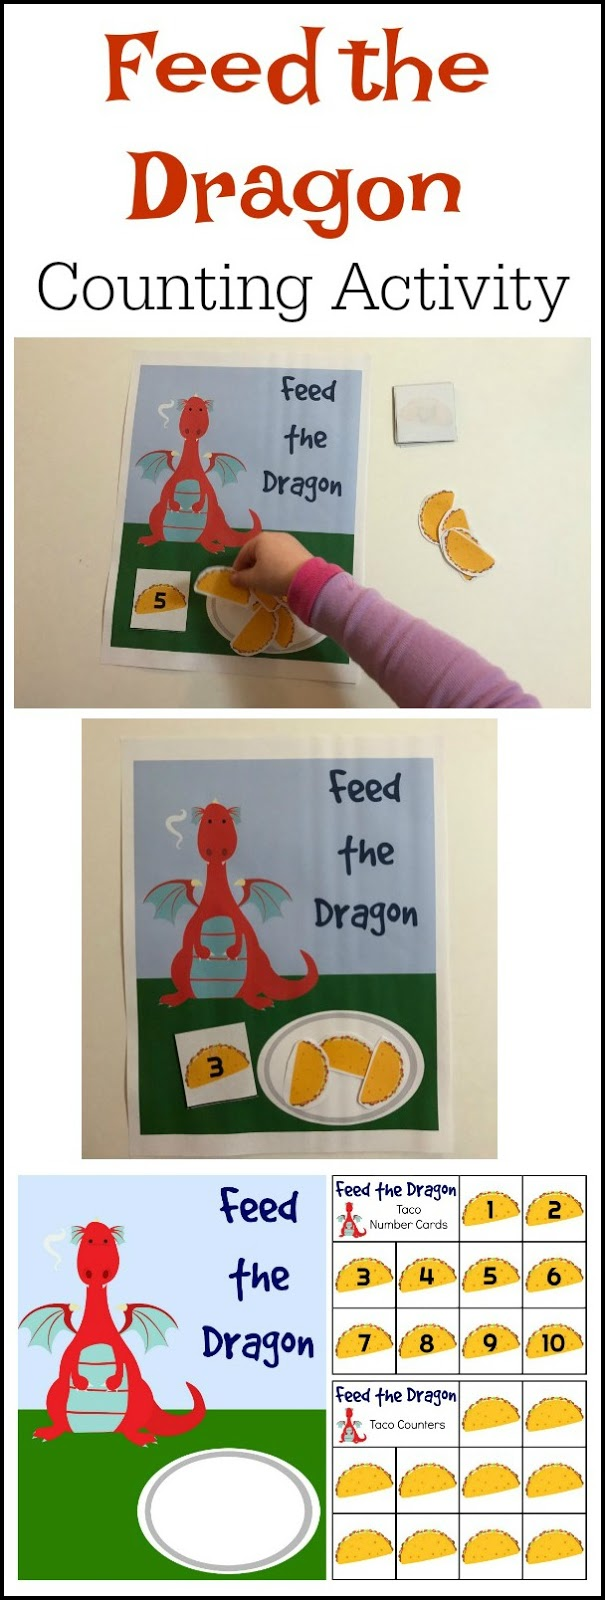 Crayon Freckles Dragons Love Tacos Math Activity For Kids